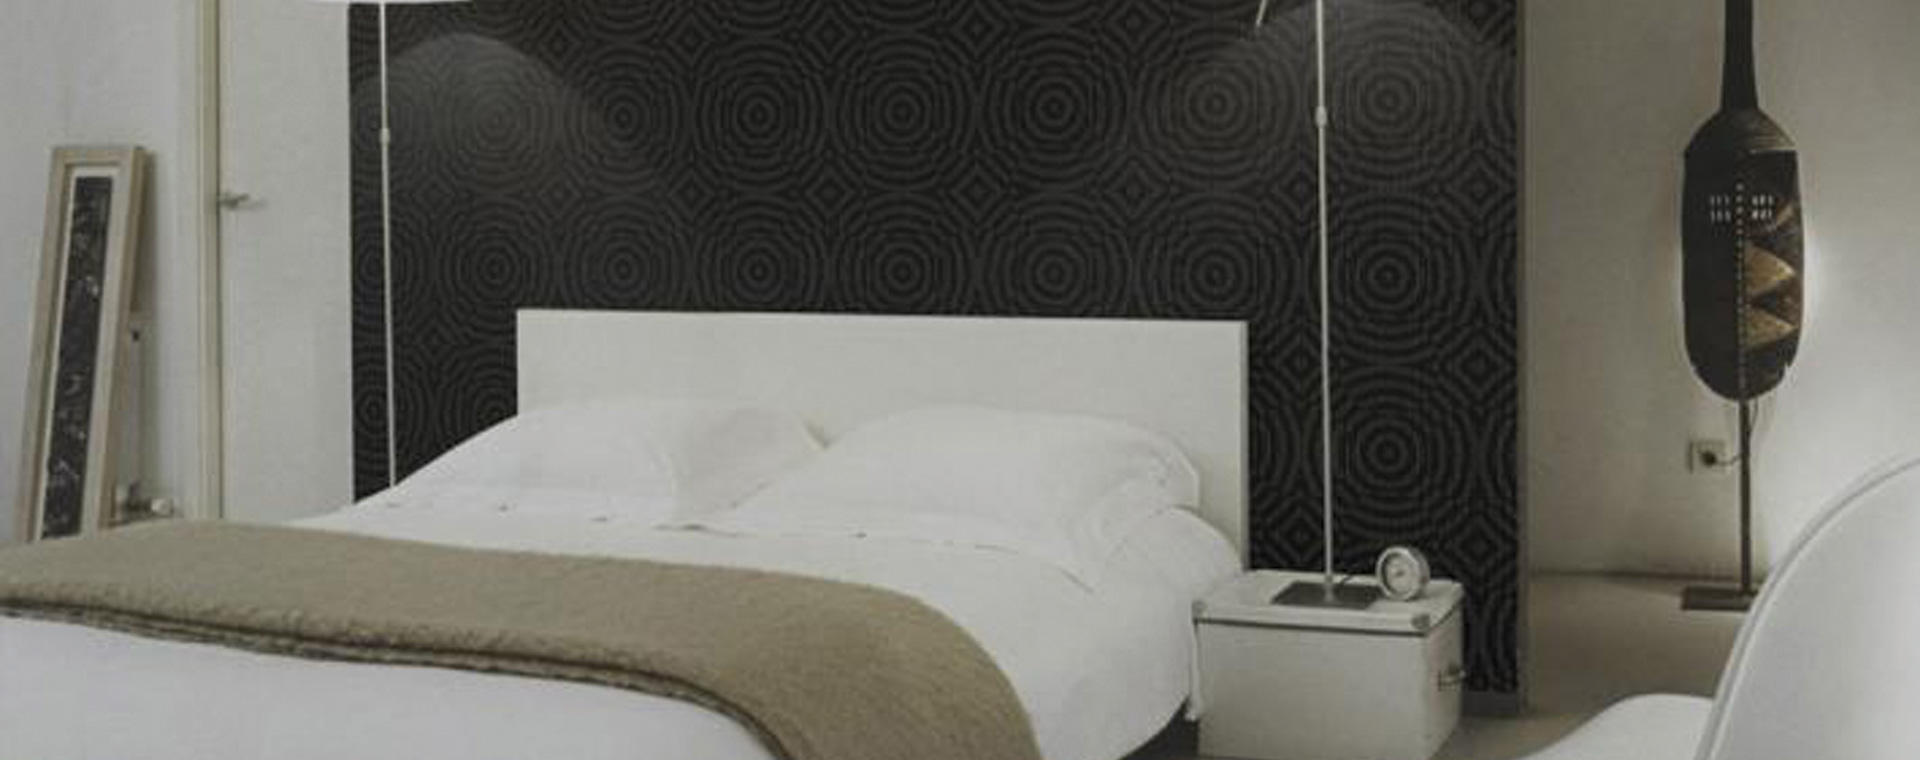 loic prevost peinture yvetot rev tement de sol mur. Black Bedroom Furniture Sets. Home Design Ideas